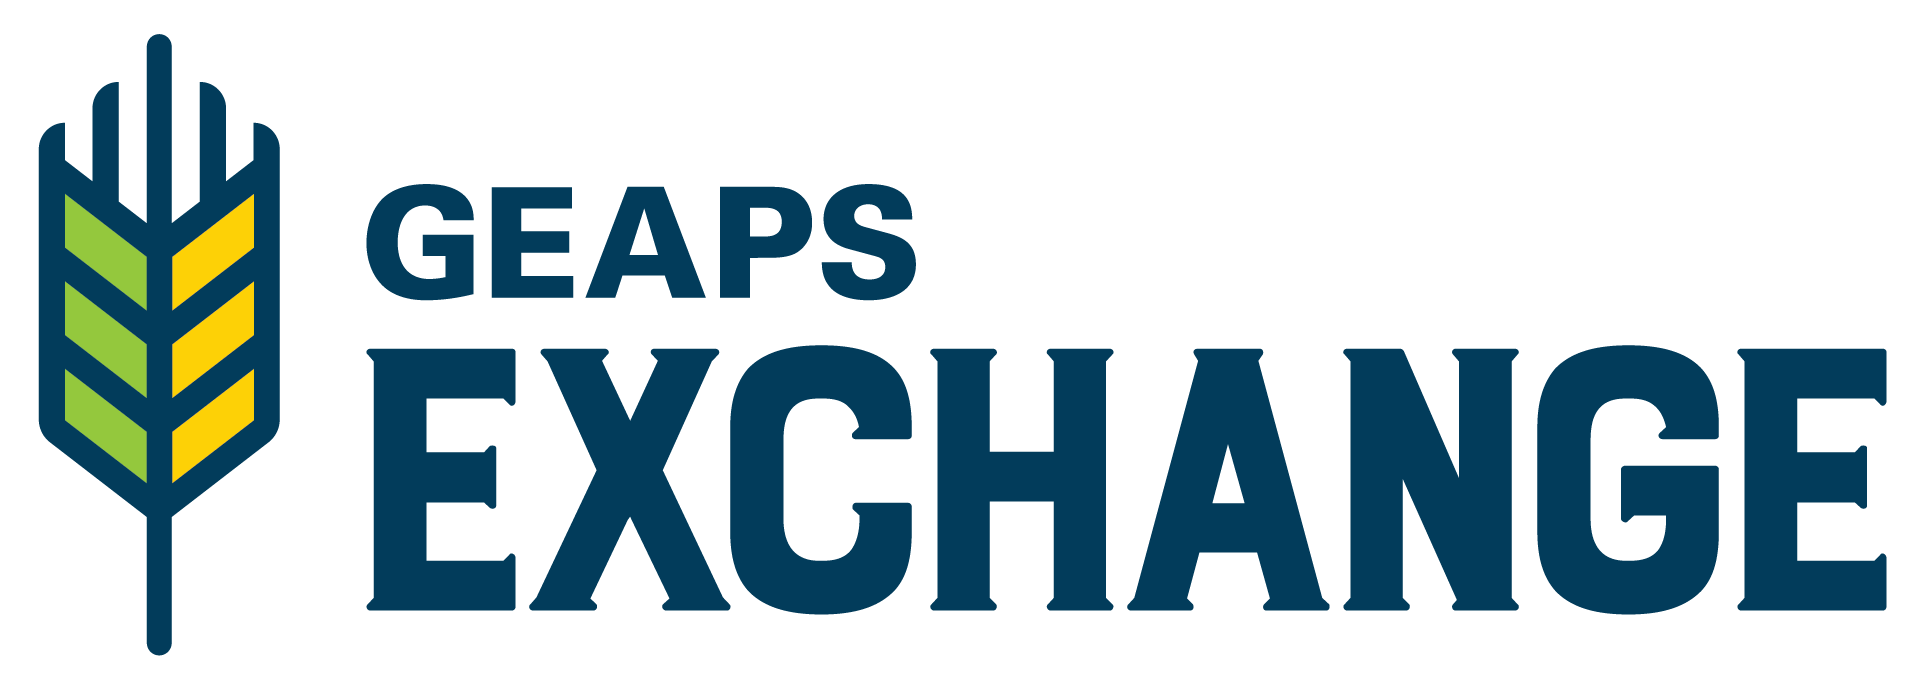 GEAPS Exchange